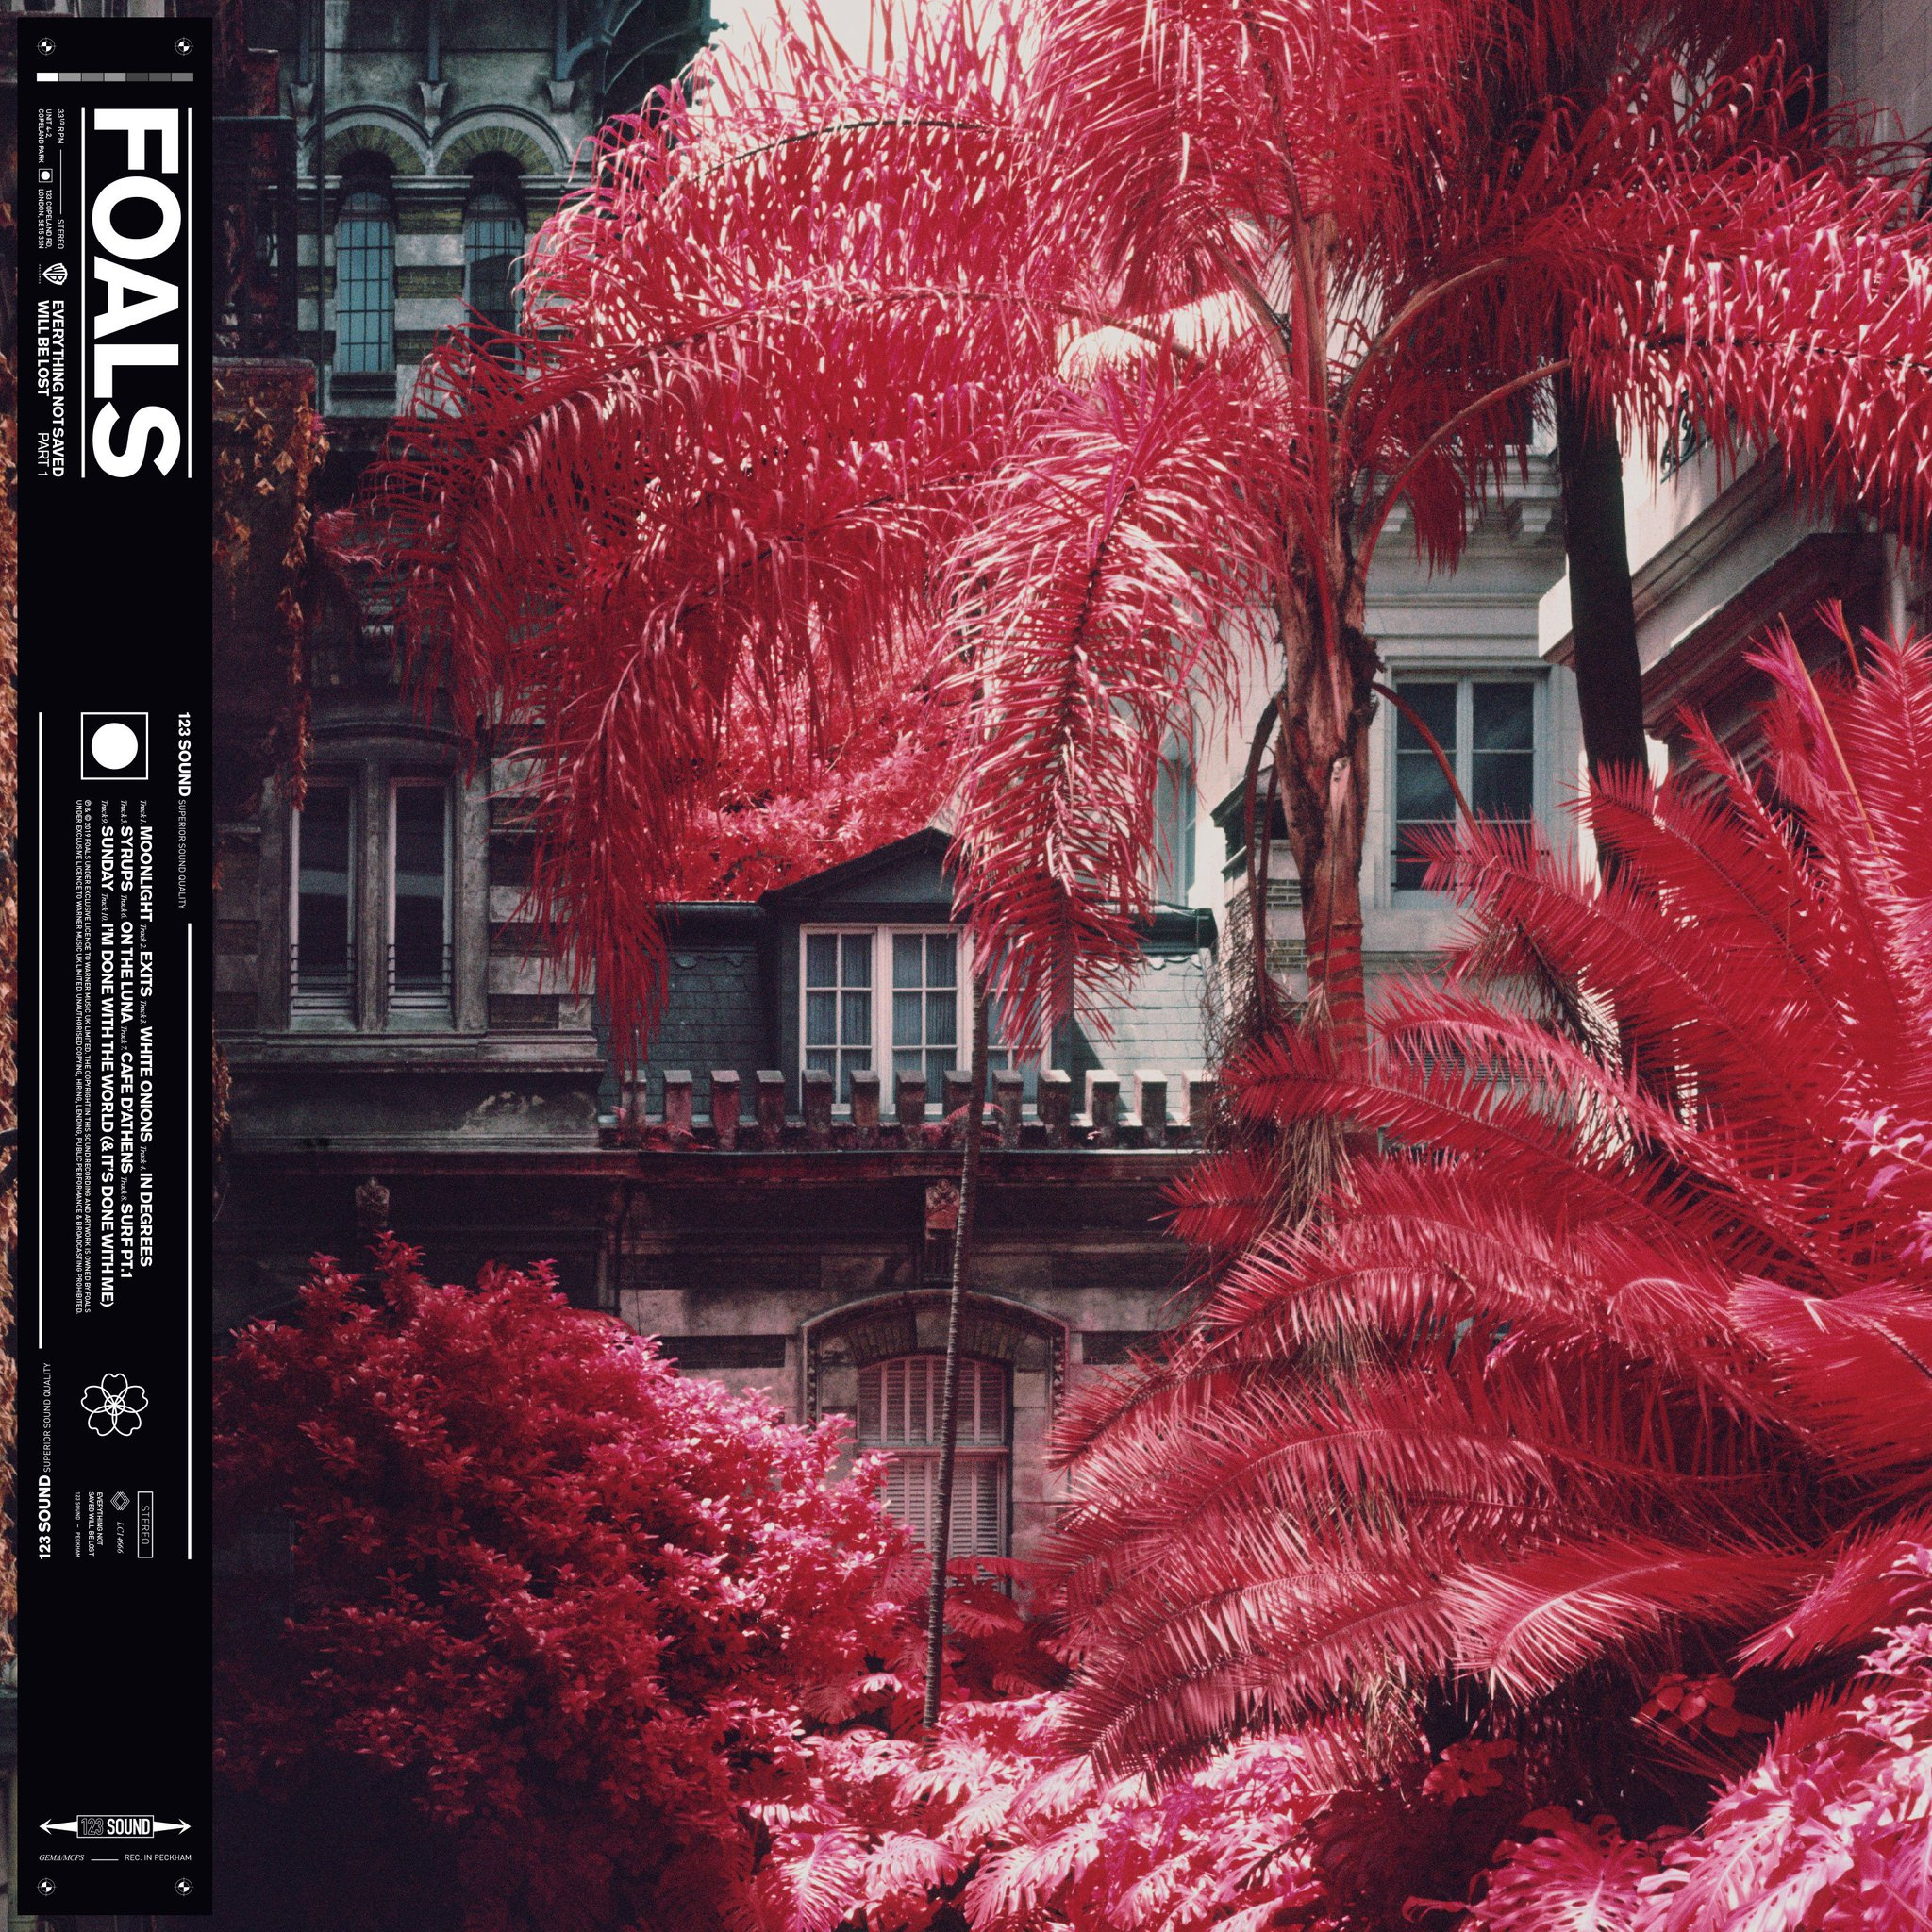 Album art for Foals' upcoming album 'Everything Not Saved Will Be Lost Part 1'.